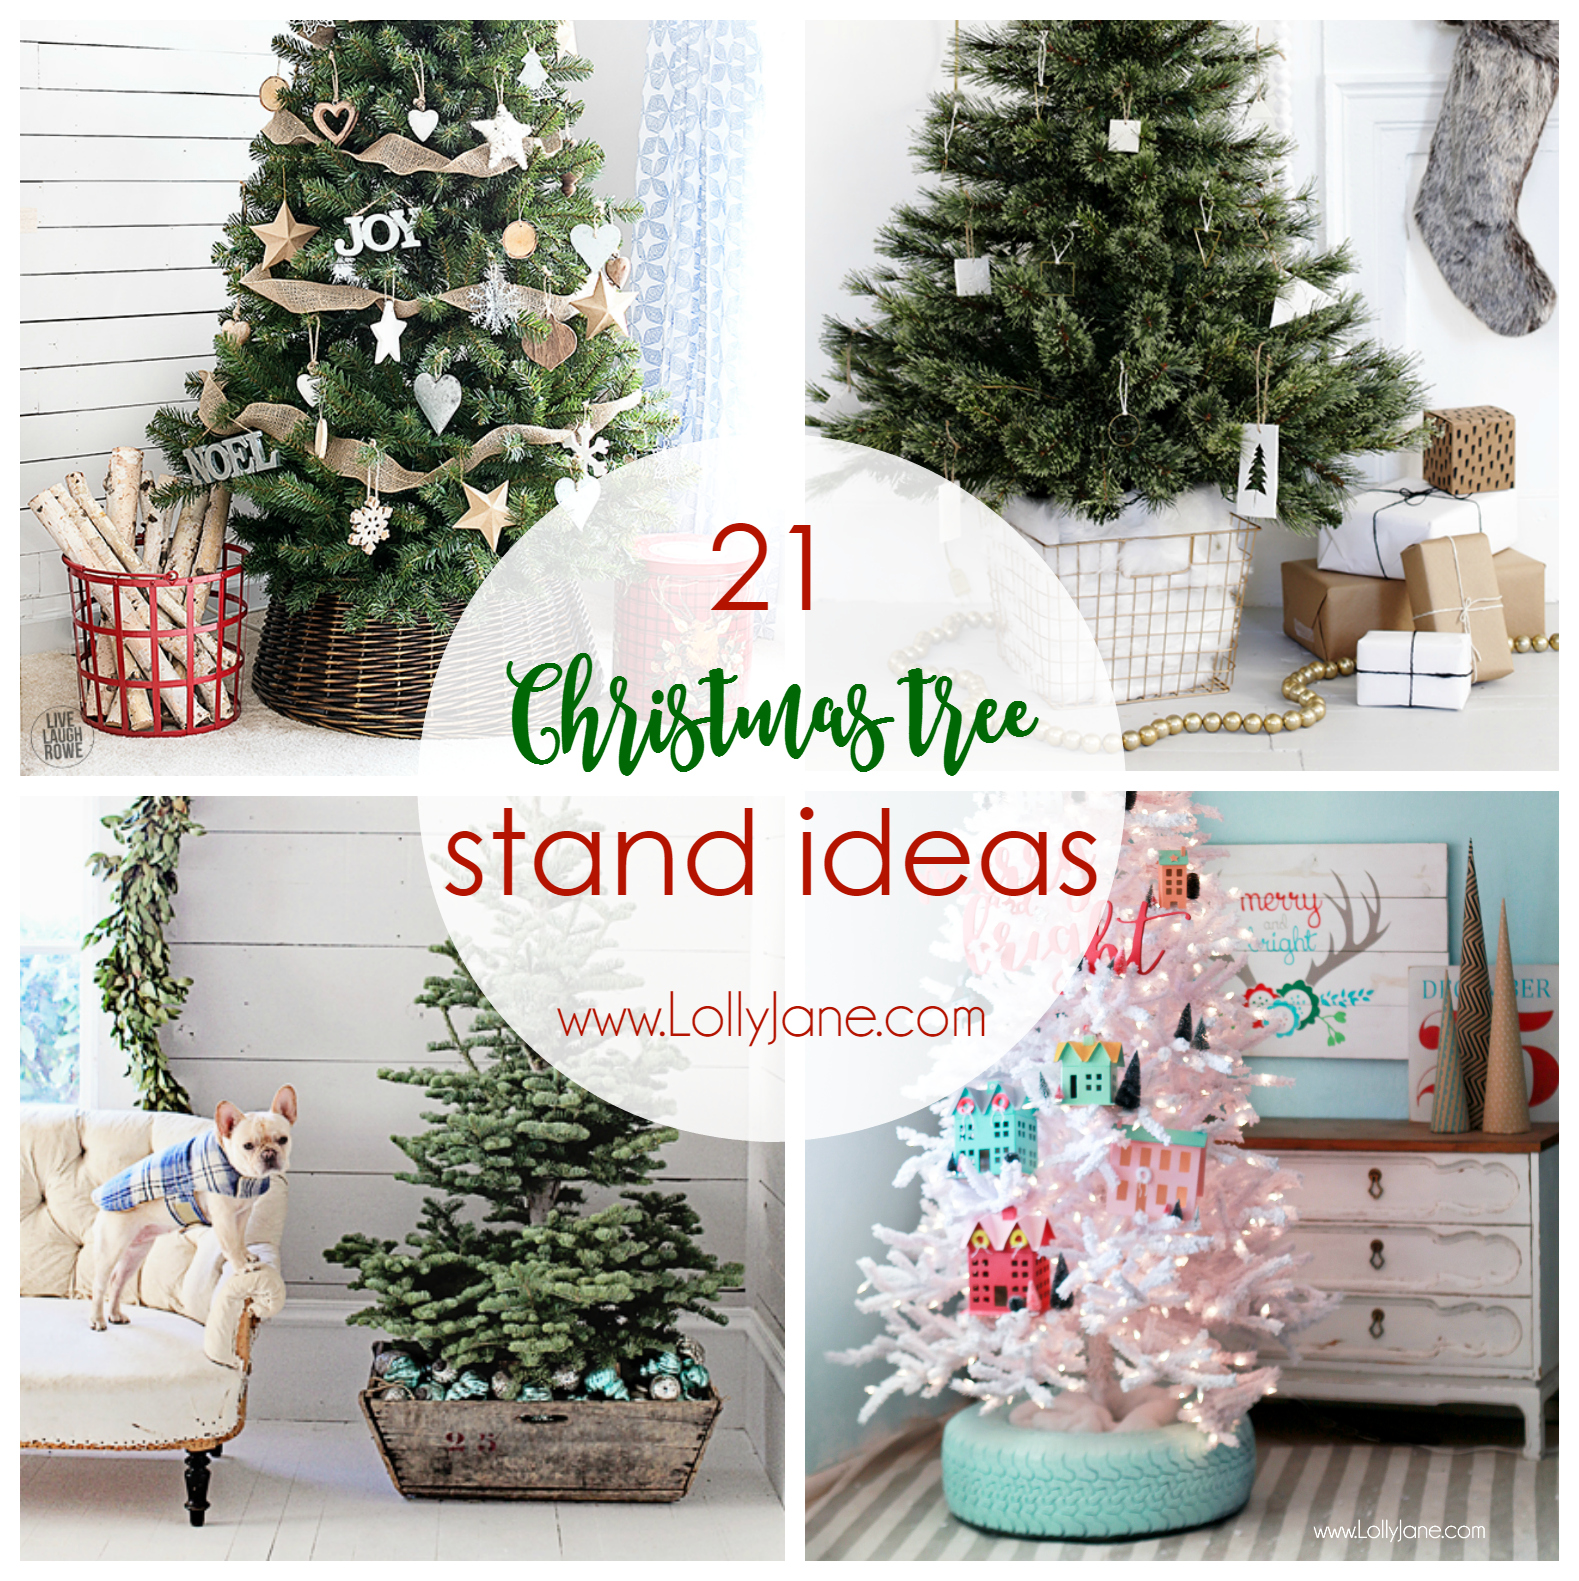 Christmas tree stand ideas lolly jane